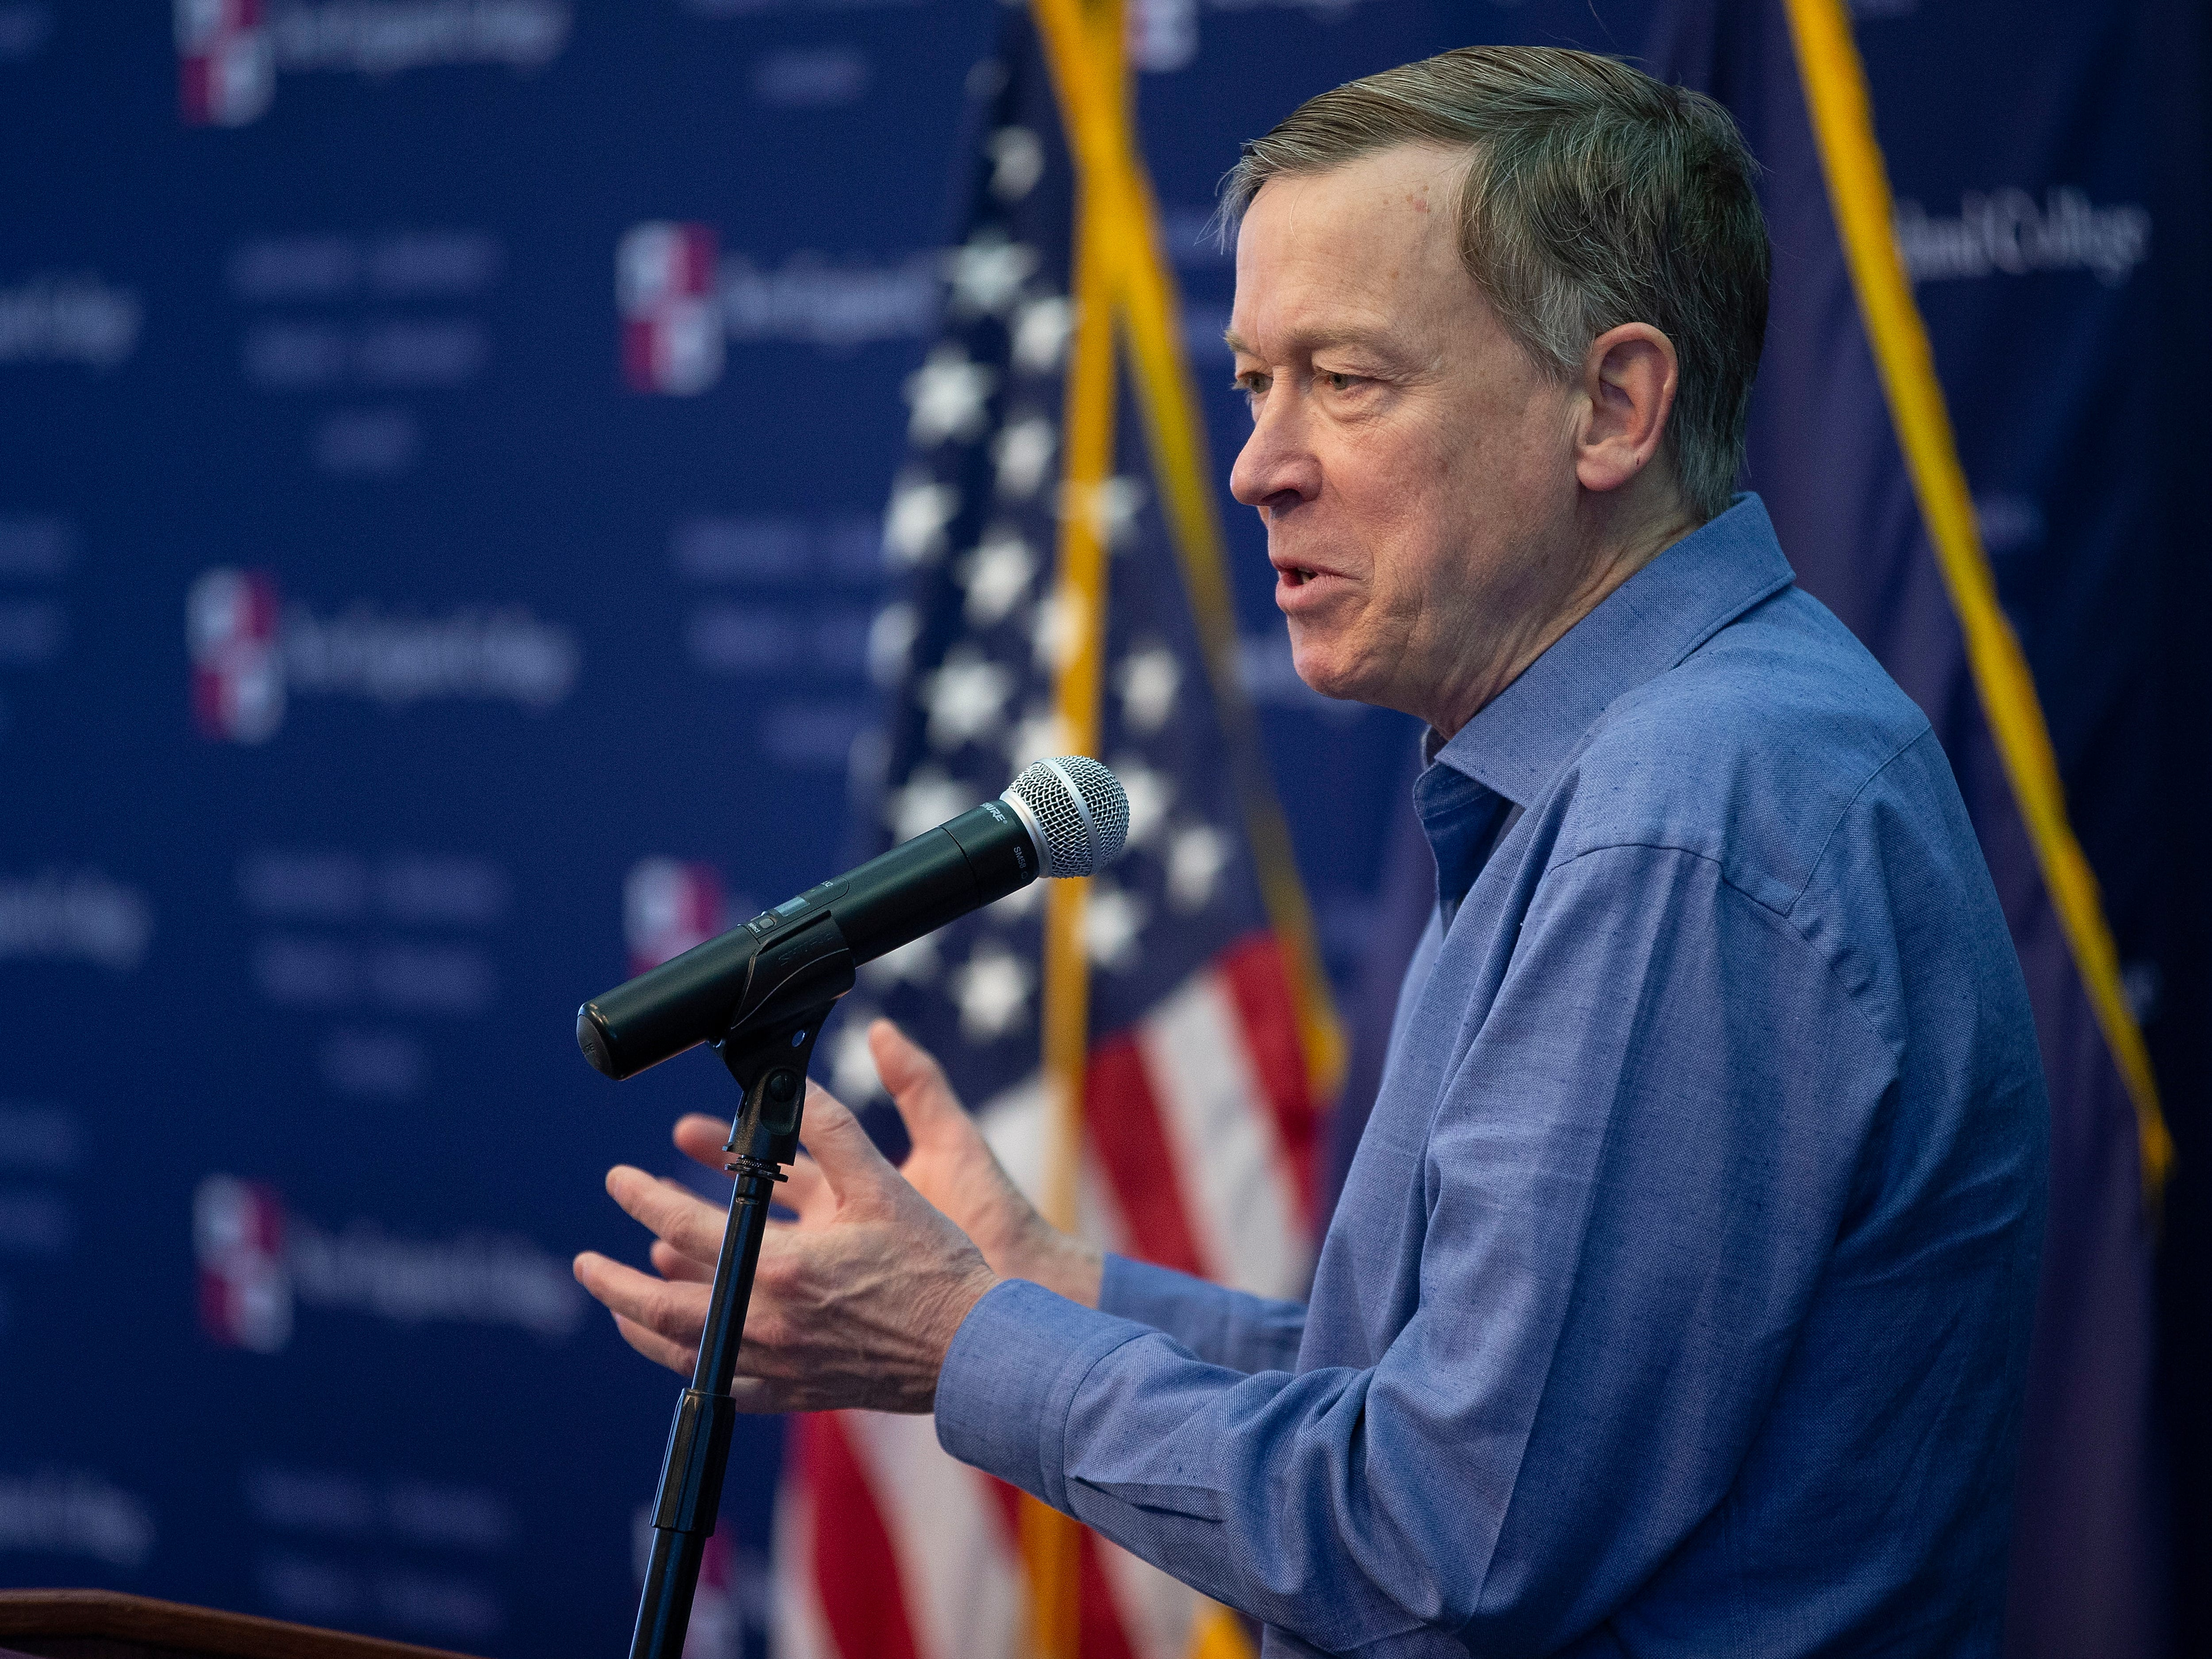 Former Colorado Gov. John Hickenlooper announced he is running for president on March 4, 2019.